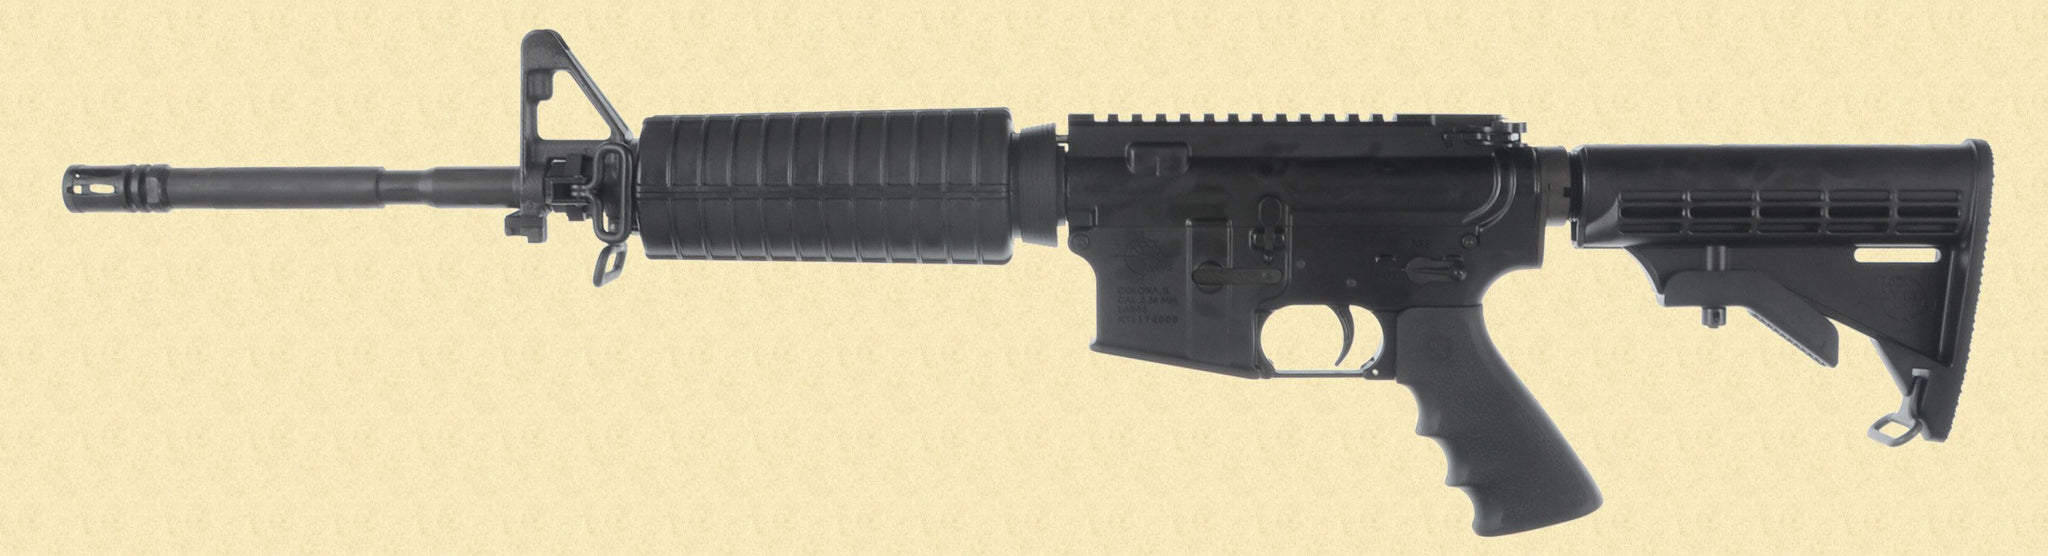 ROCK RIVER ARMS LAR-15